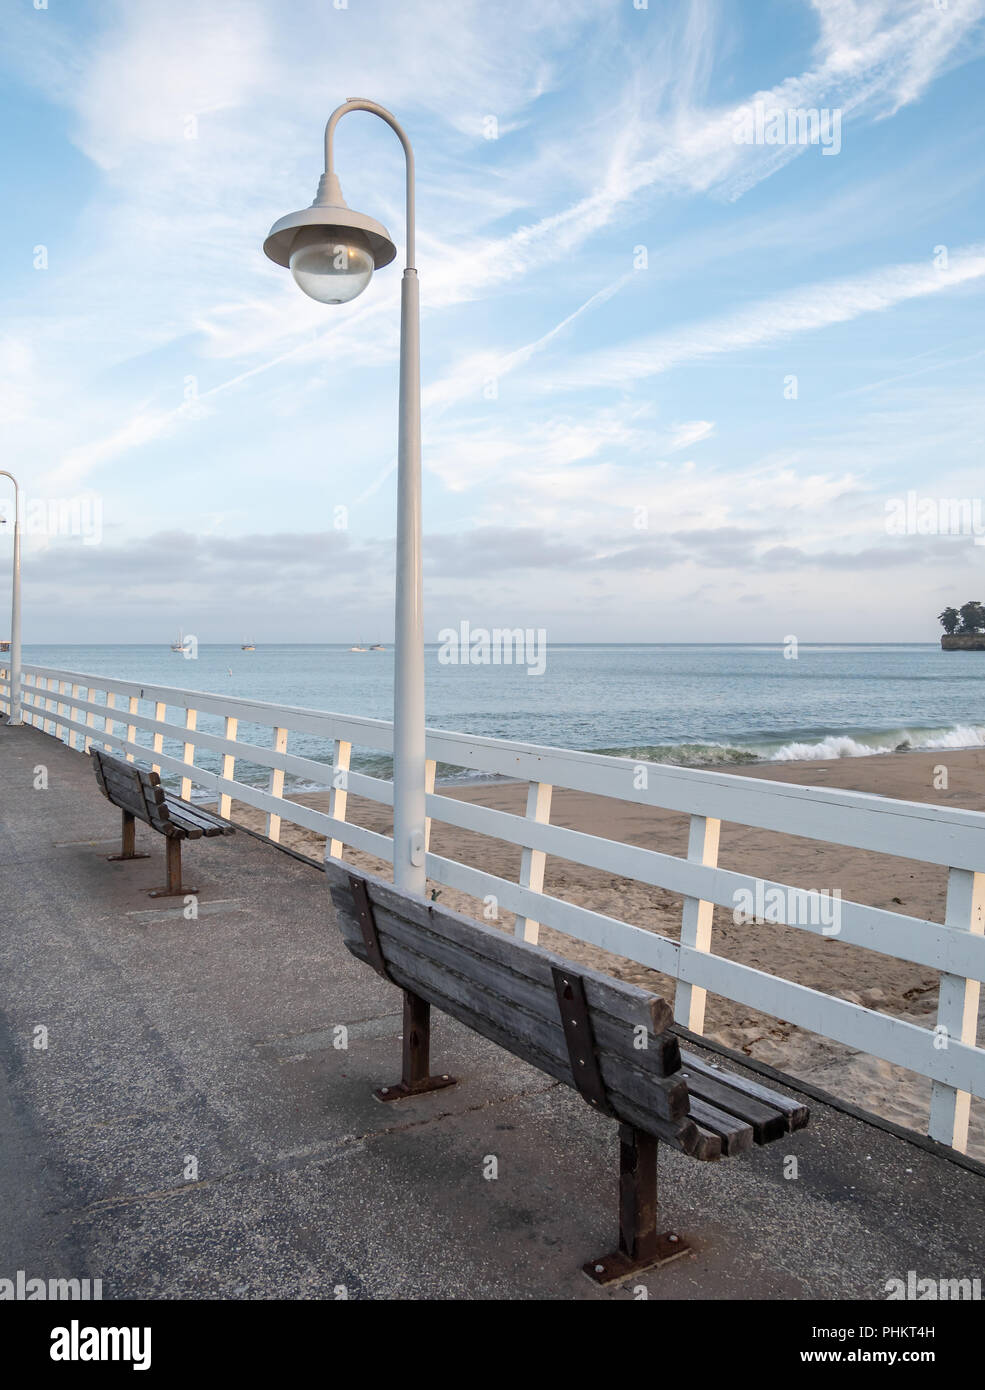 Two Wood Benches On Pier Overlooking the Beach With mostly Sunny Skies - Stock Image